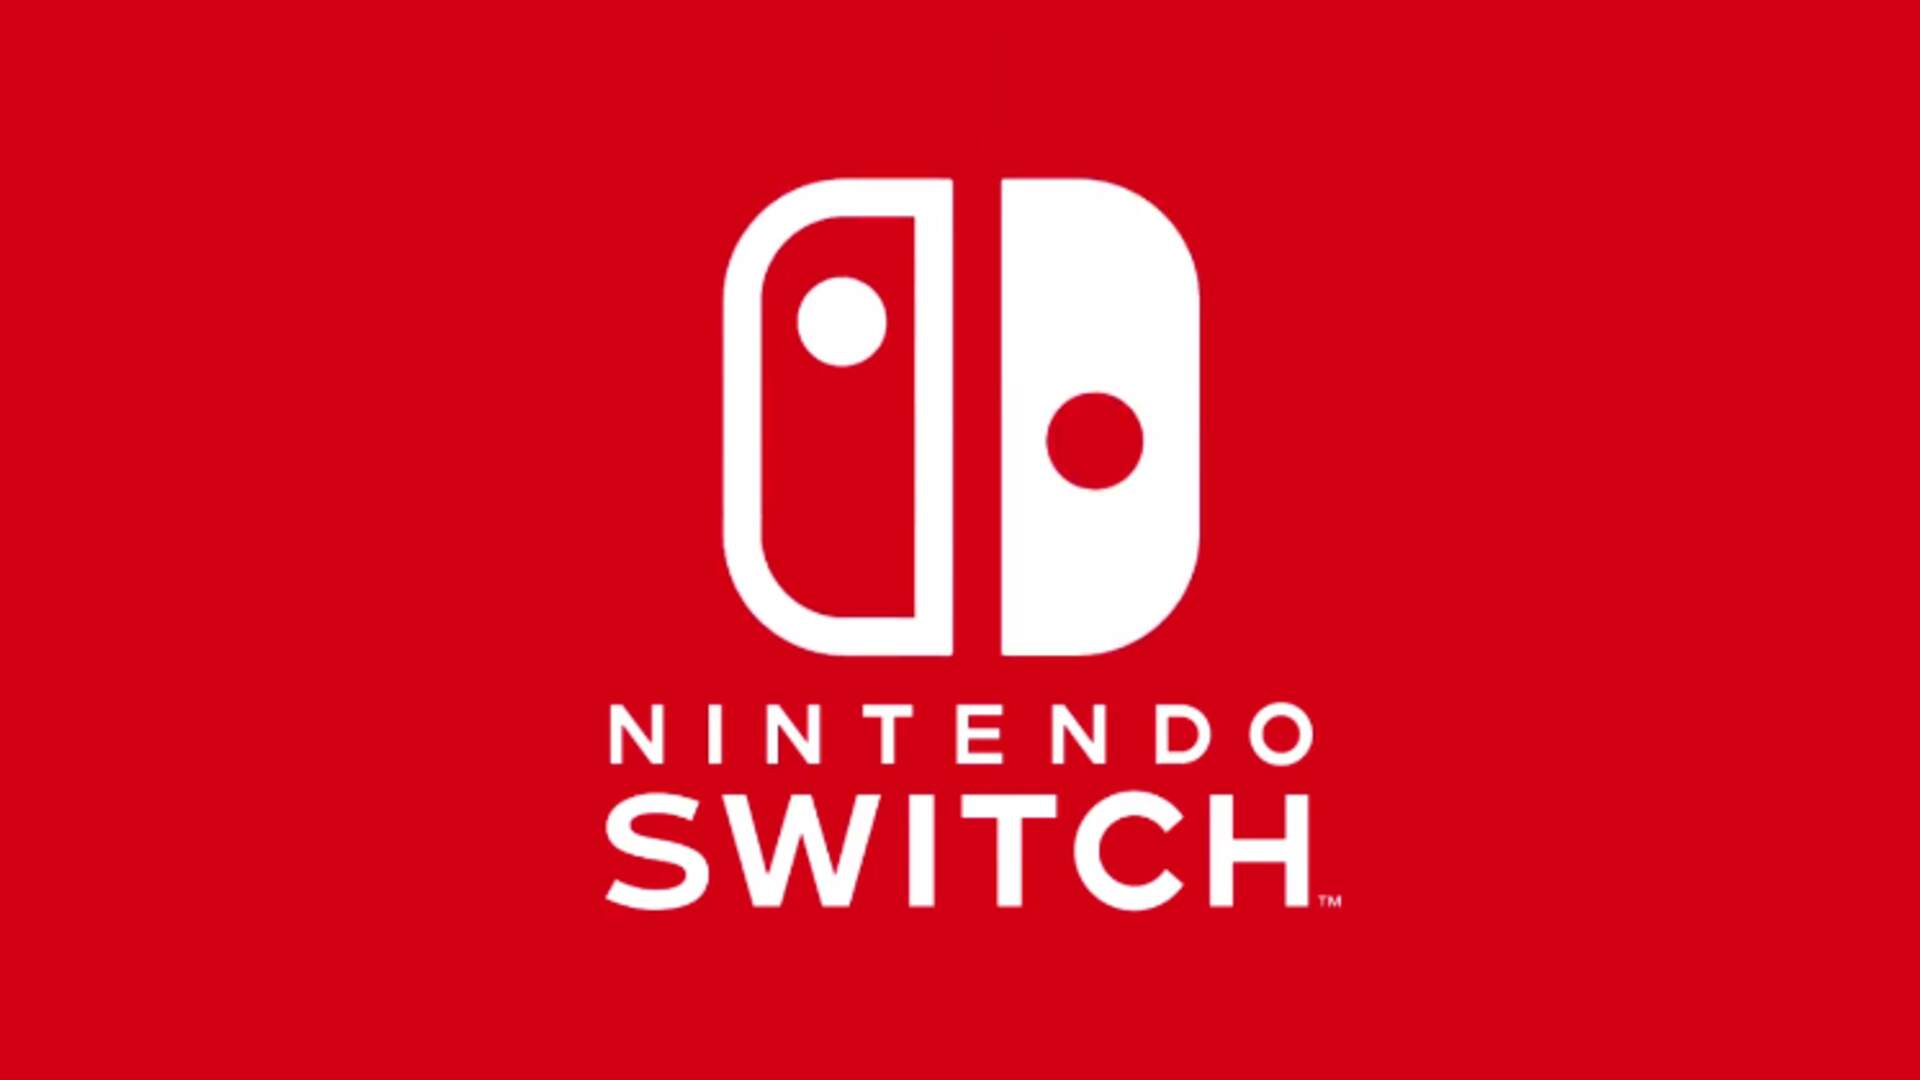 Nintendo Is Taking the Switch on a Preview Tour in 2017